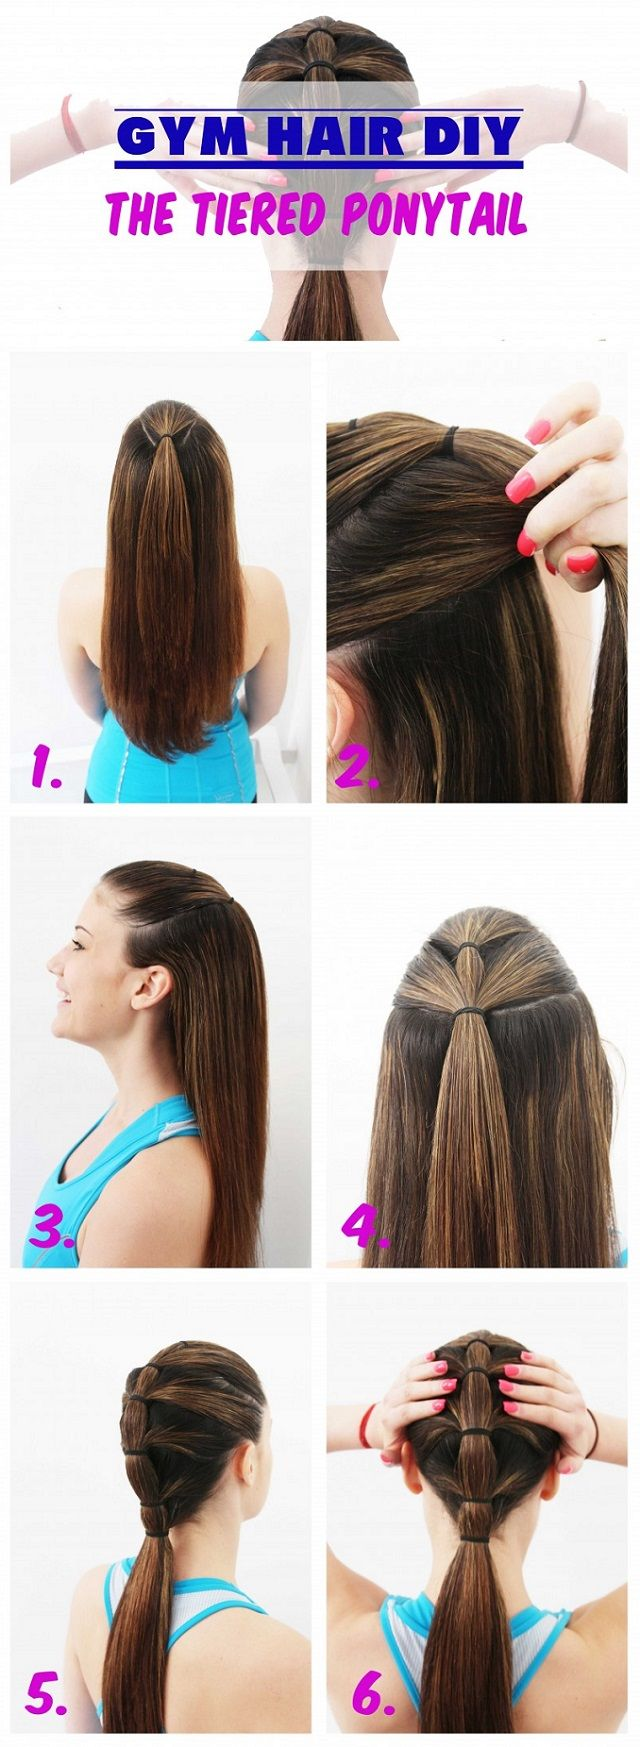 Quick and easy gym hair gym hair gym and easy